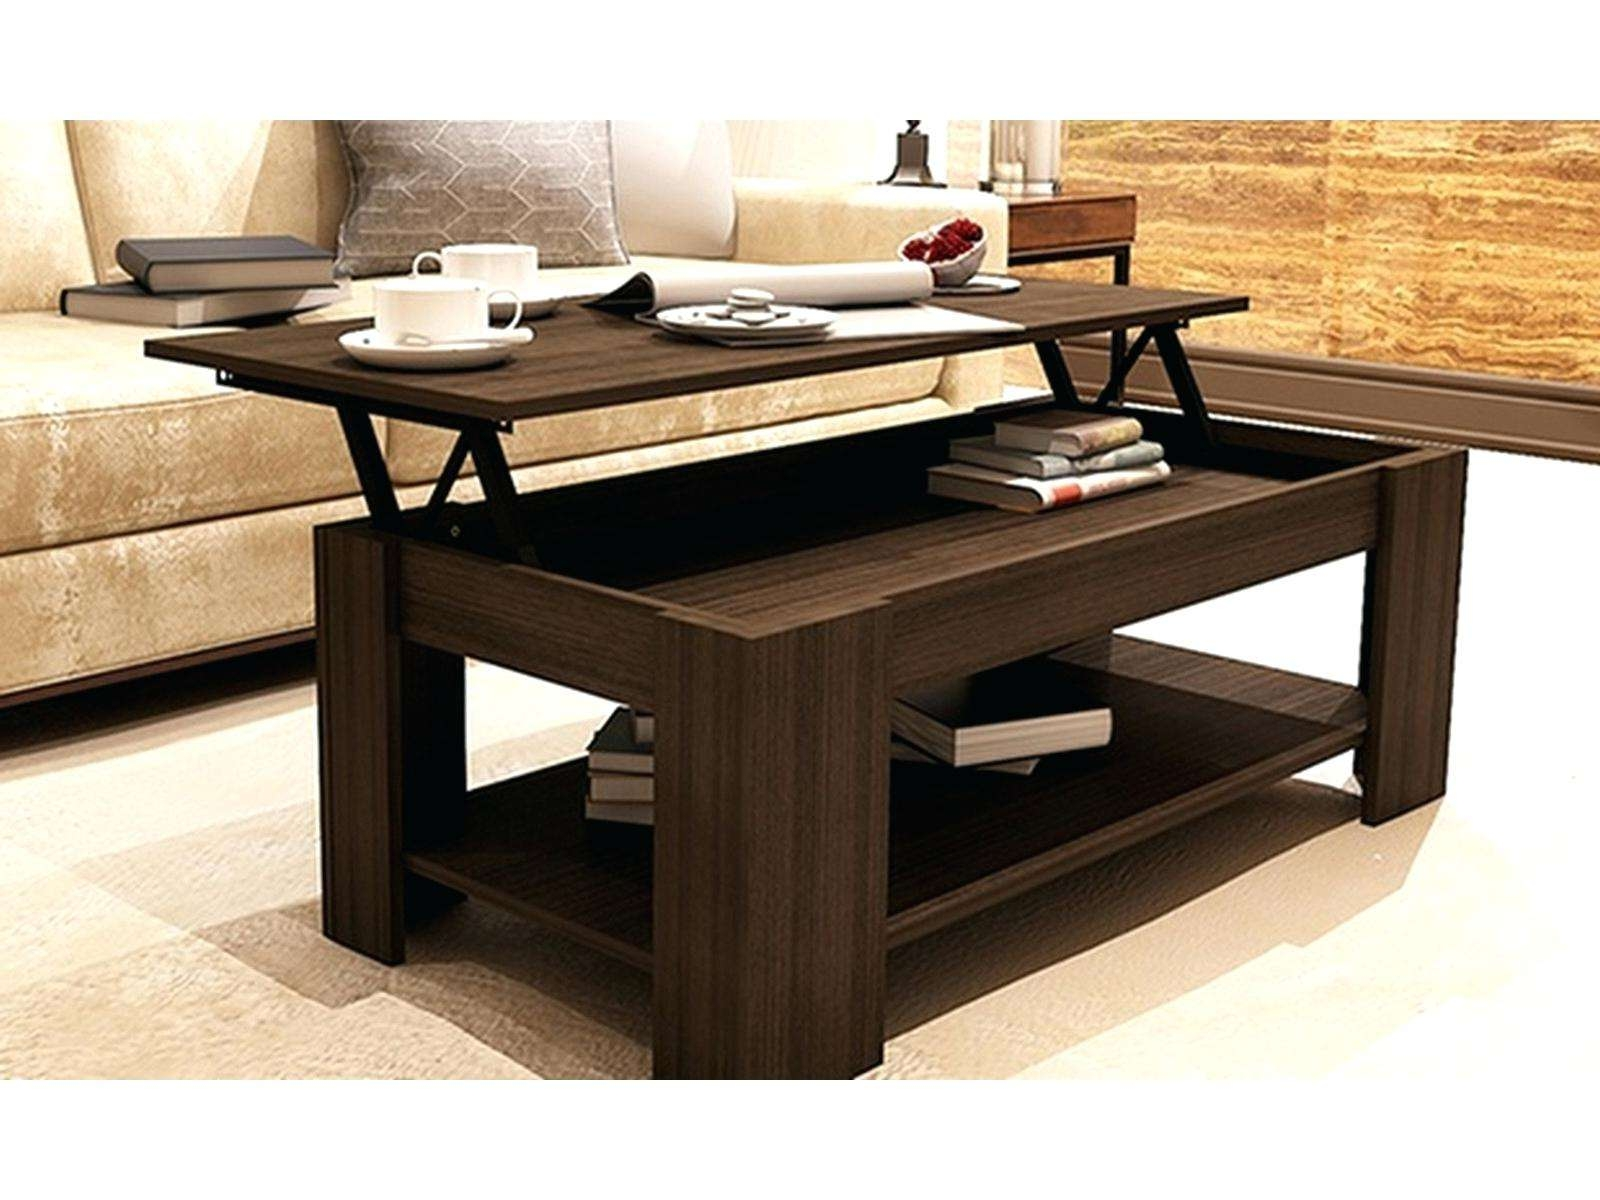 Coffee Tables : Image Wood Lift Top Coffee Table Ana White Diy With Regard To Best And Newest Coffee Tables Top Lifts Up (View 6 of 20)